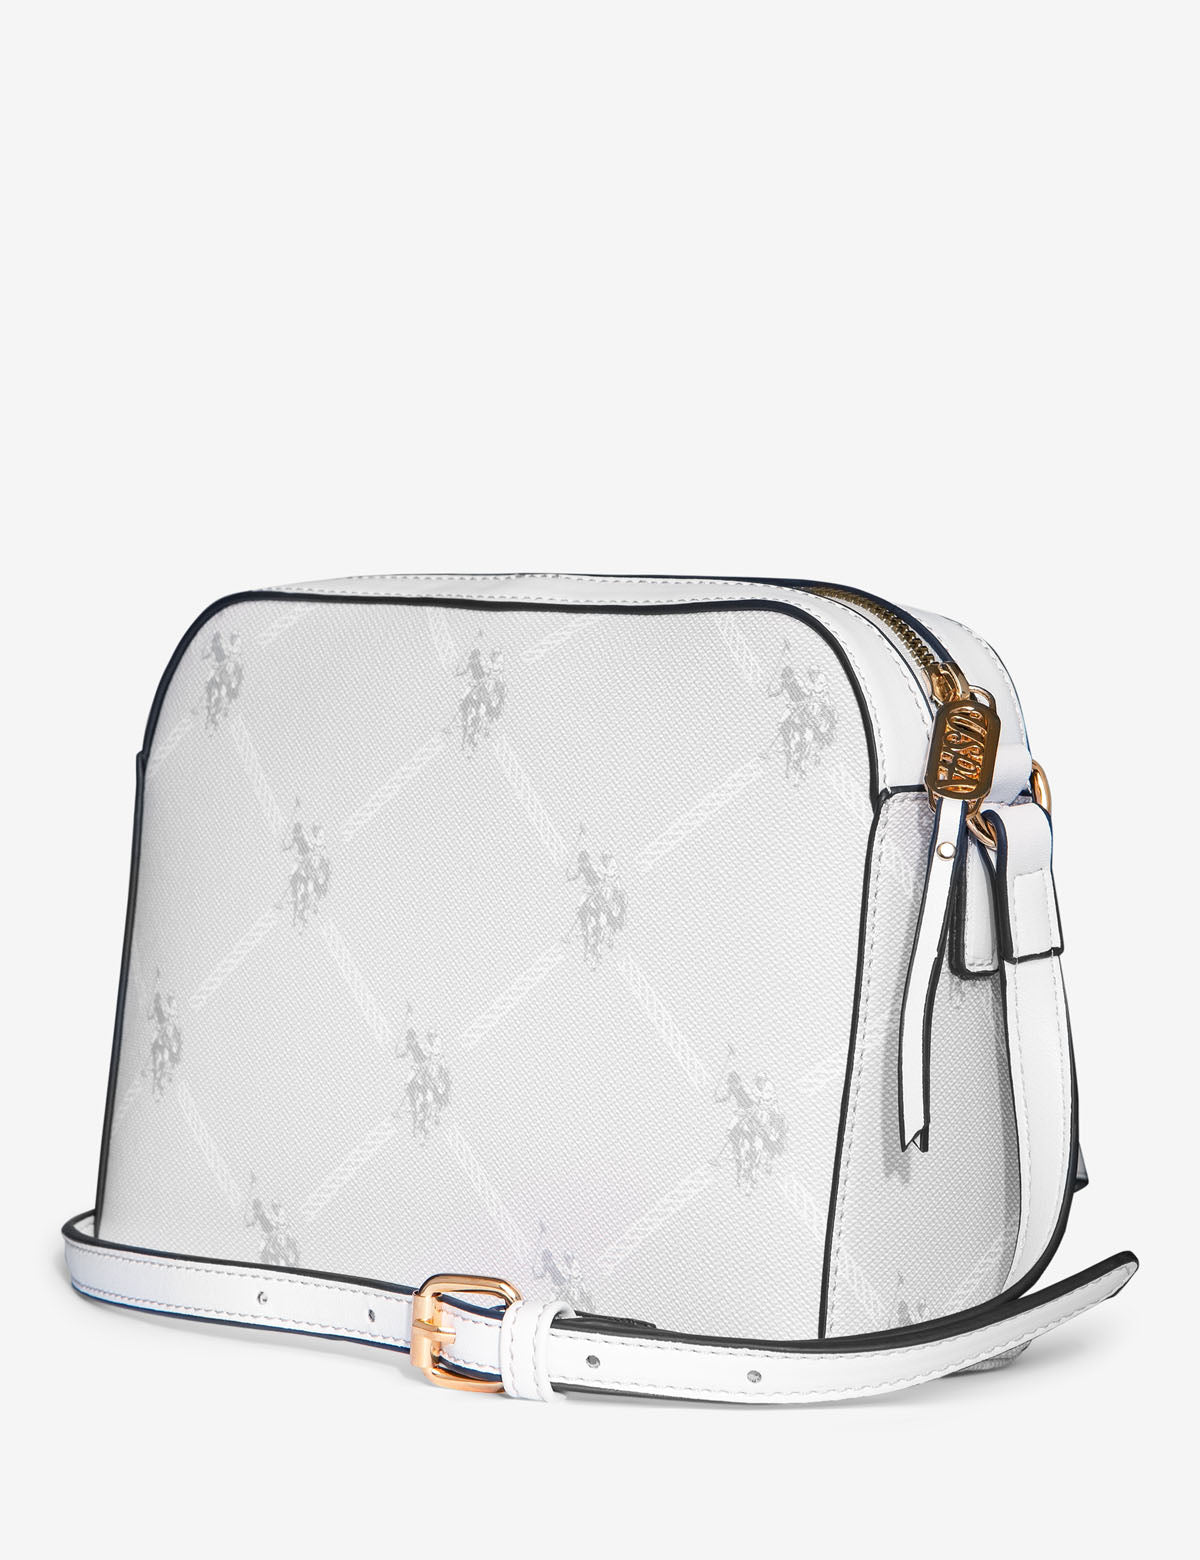 SIGNATURE CROSSBODY BAG - U.S. Polo Assn.